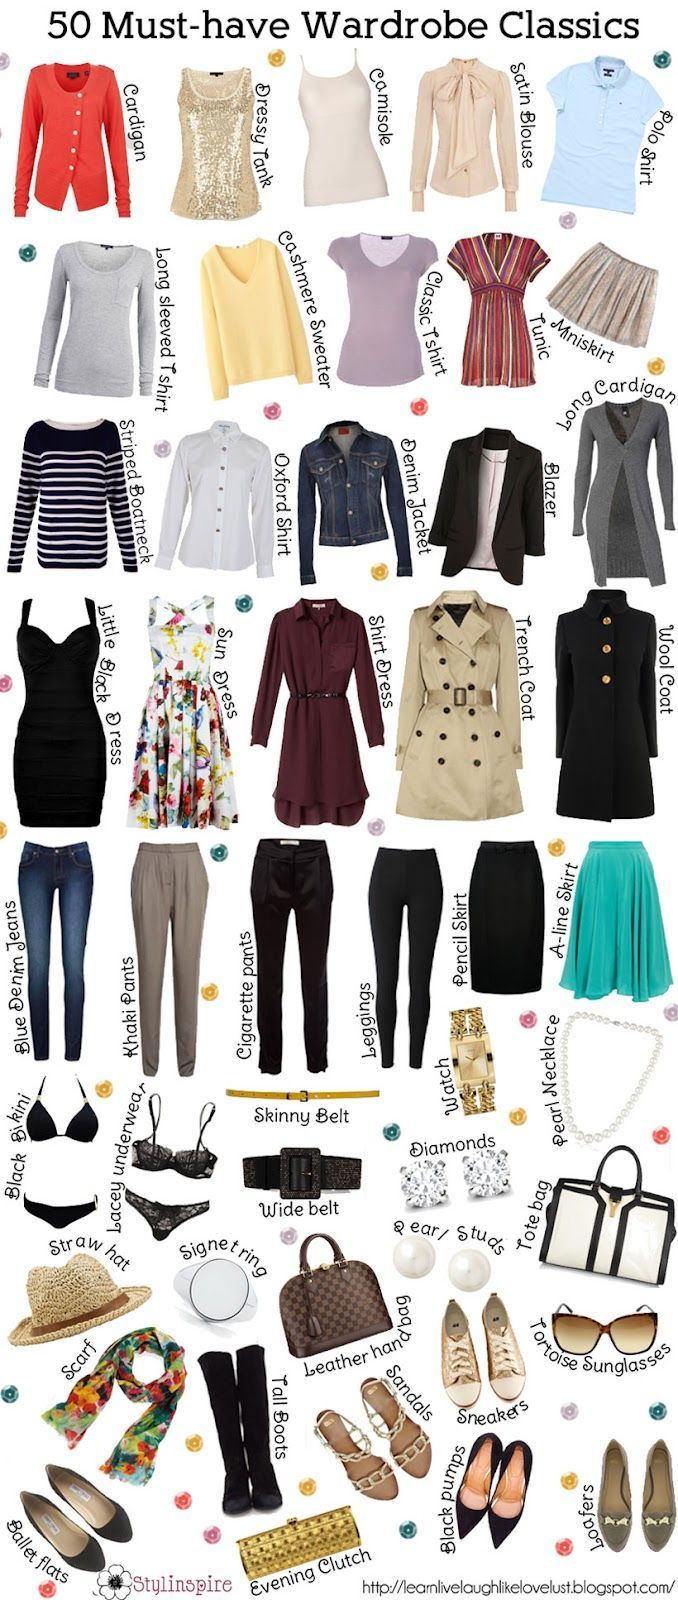 … Must have clothing items classics for wardrobe..have some .need toprint and make check off list in clo